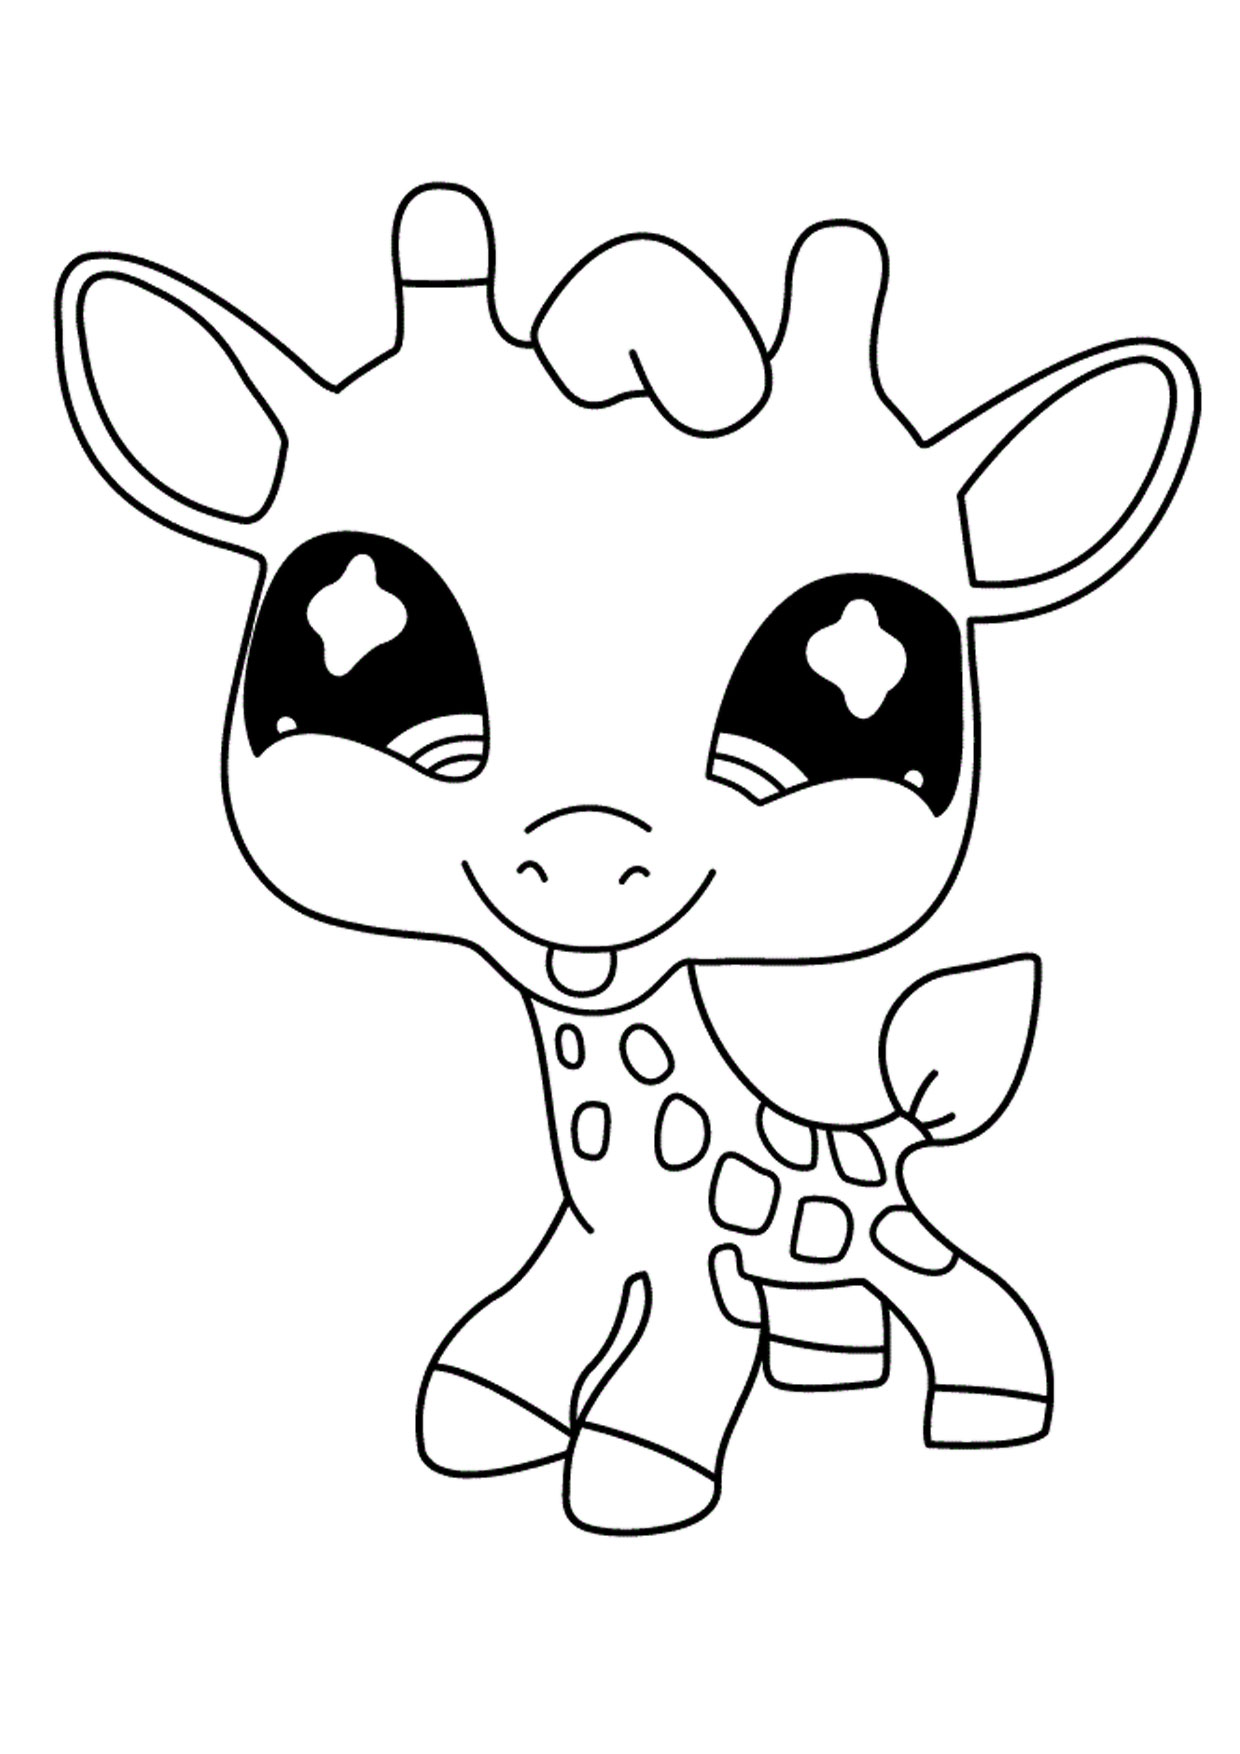 Giraffa in versione cartoon 11